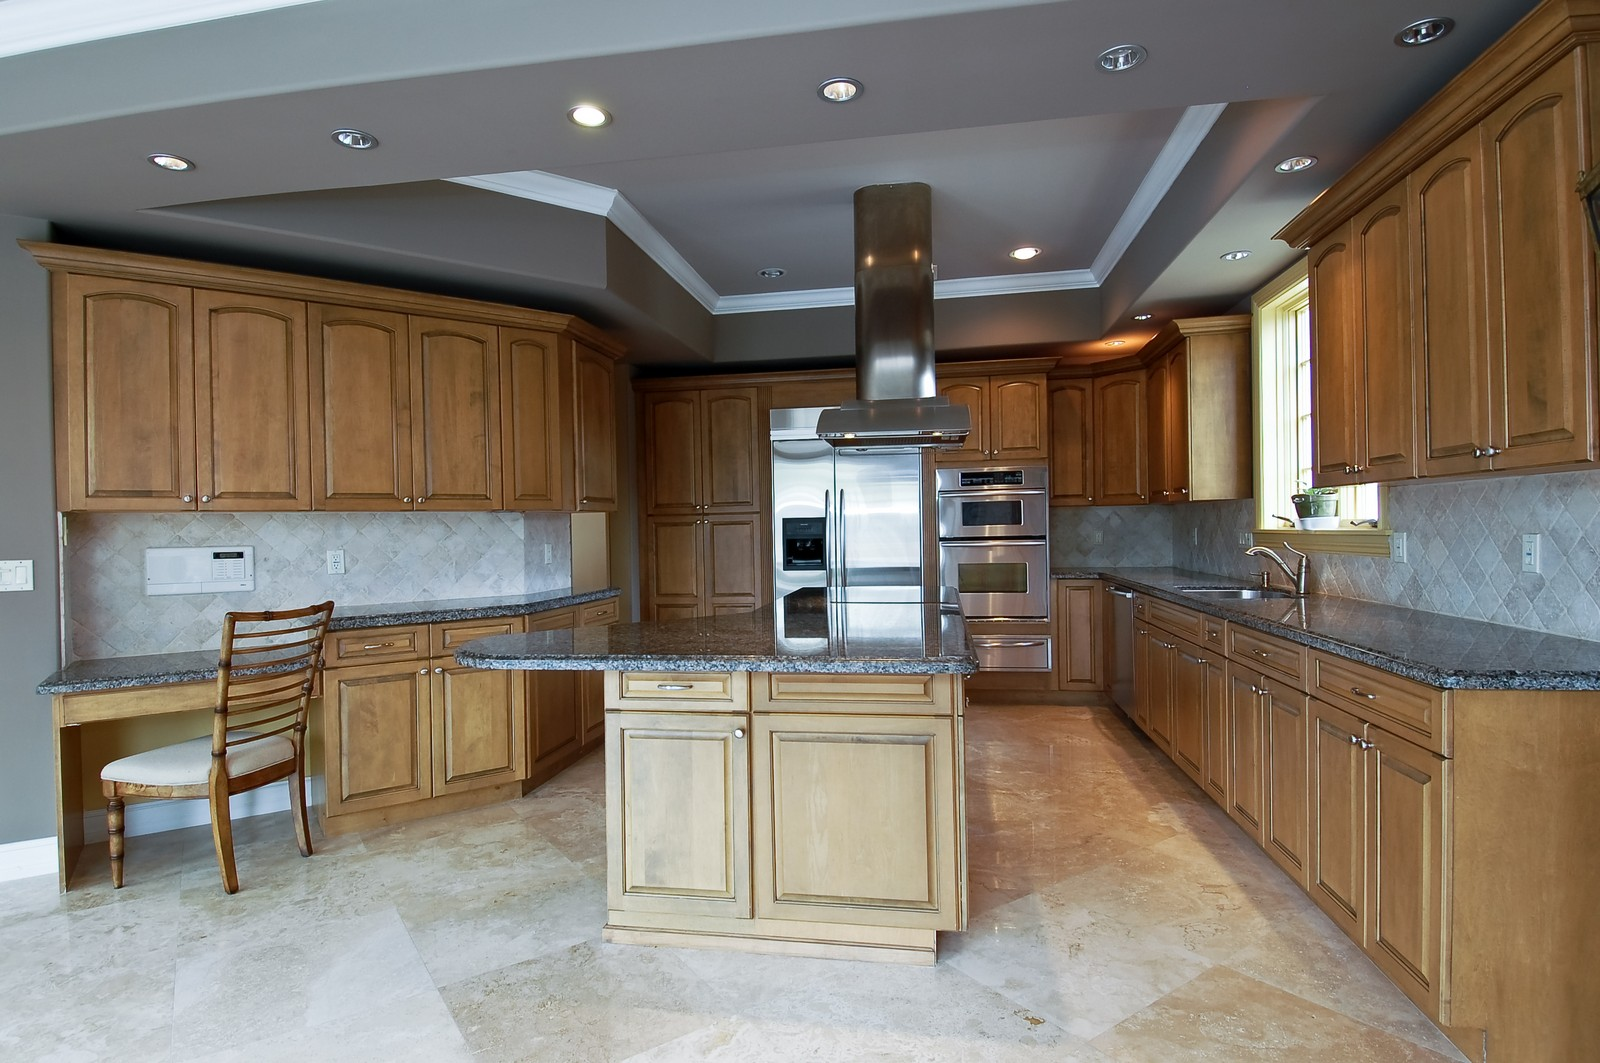 Real Estate Photography - 2325 NE 28th Ct, Lighthouse Point, FL, 33064 - Kitchen